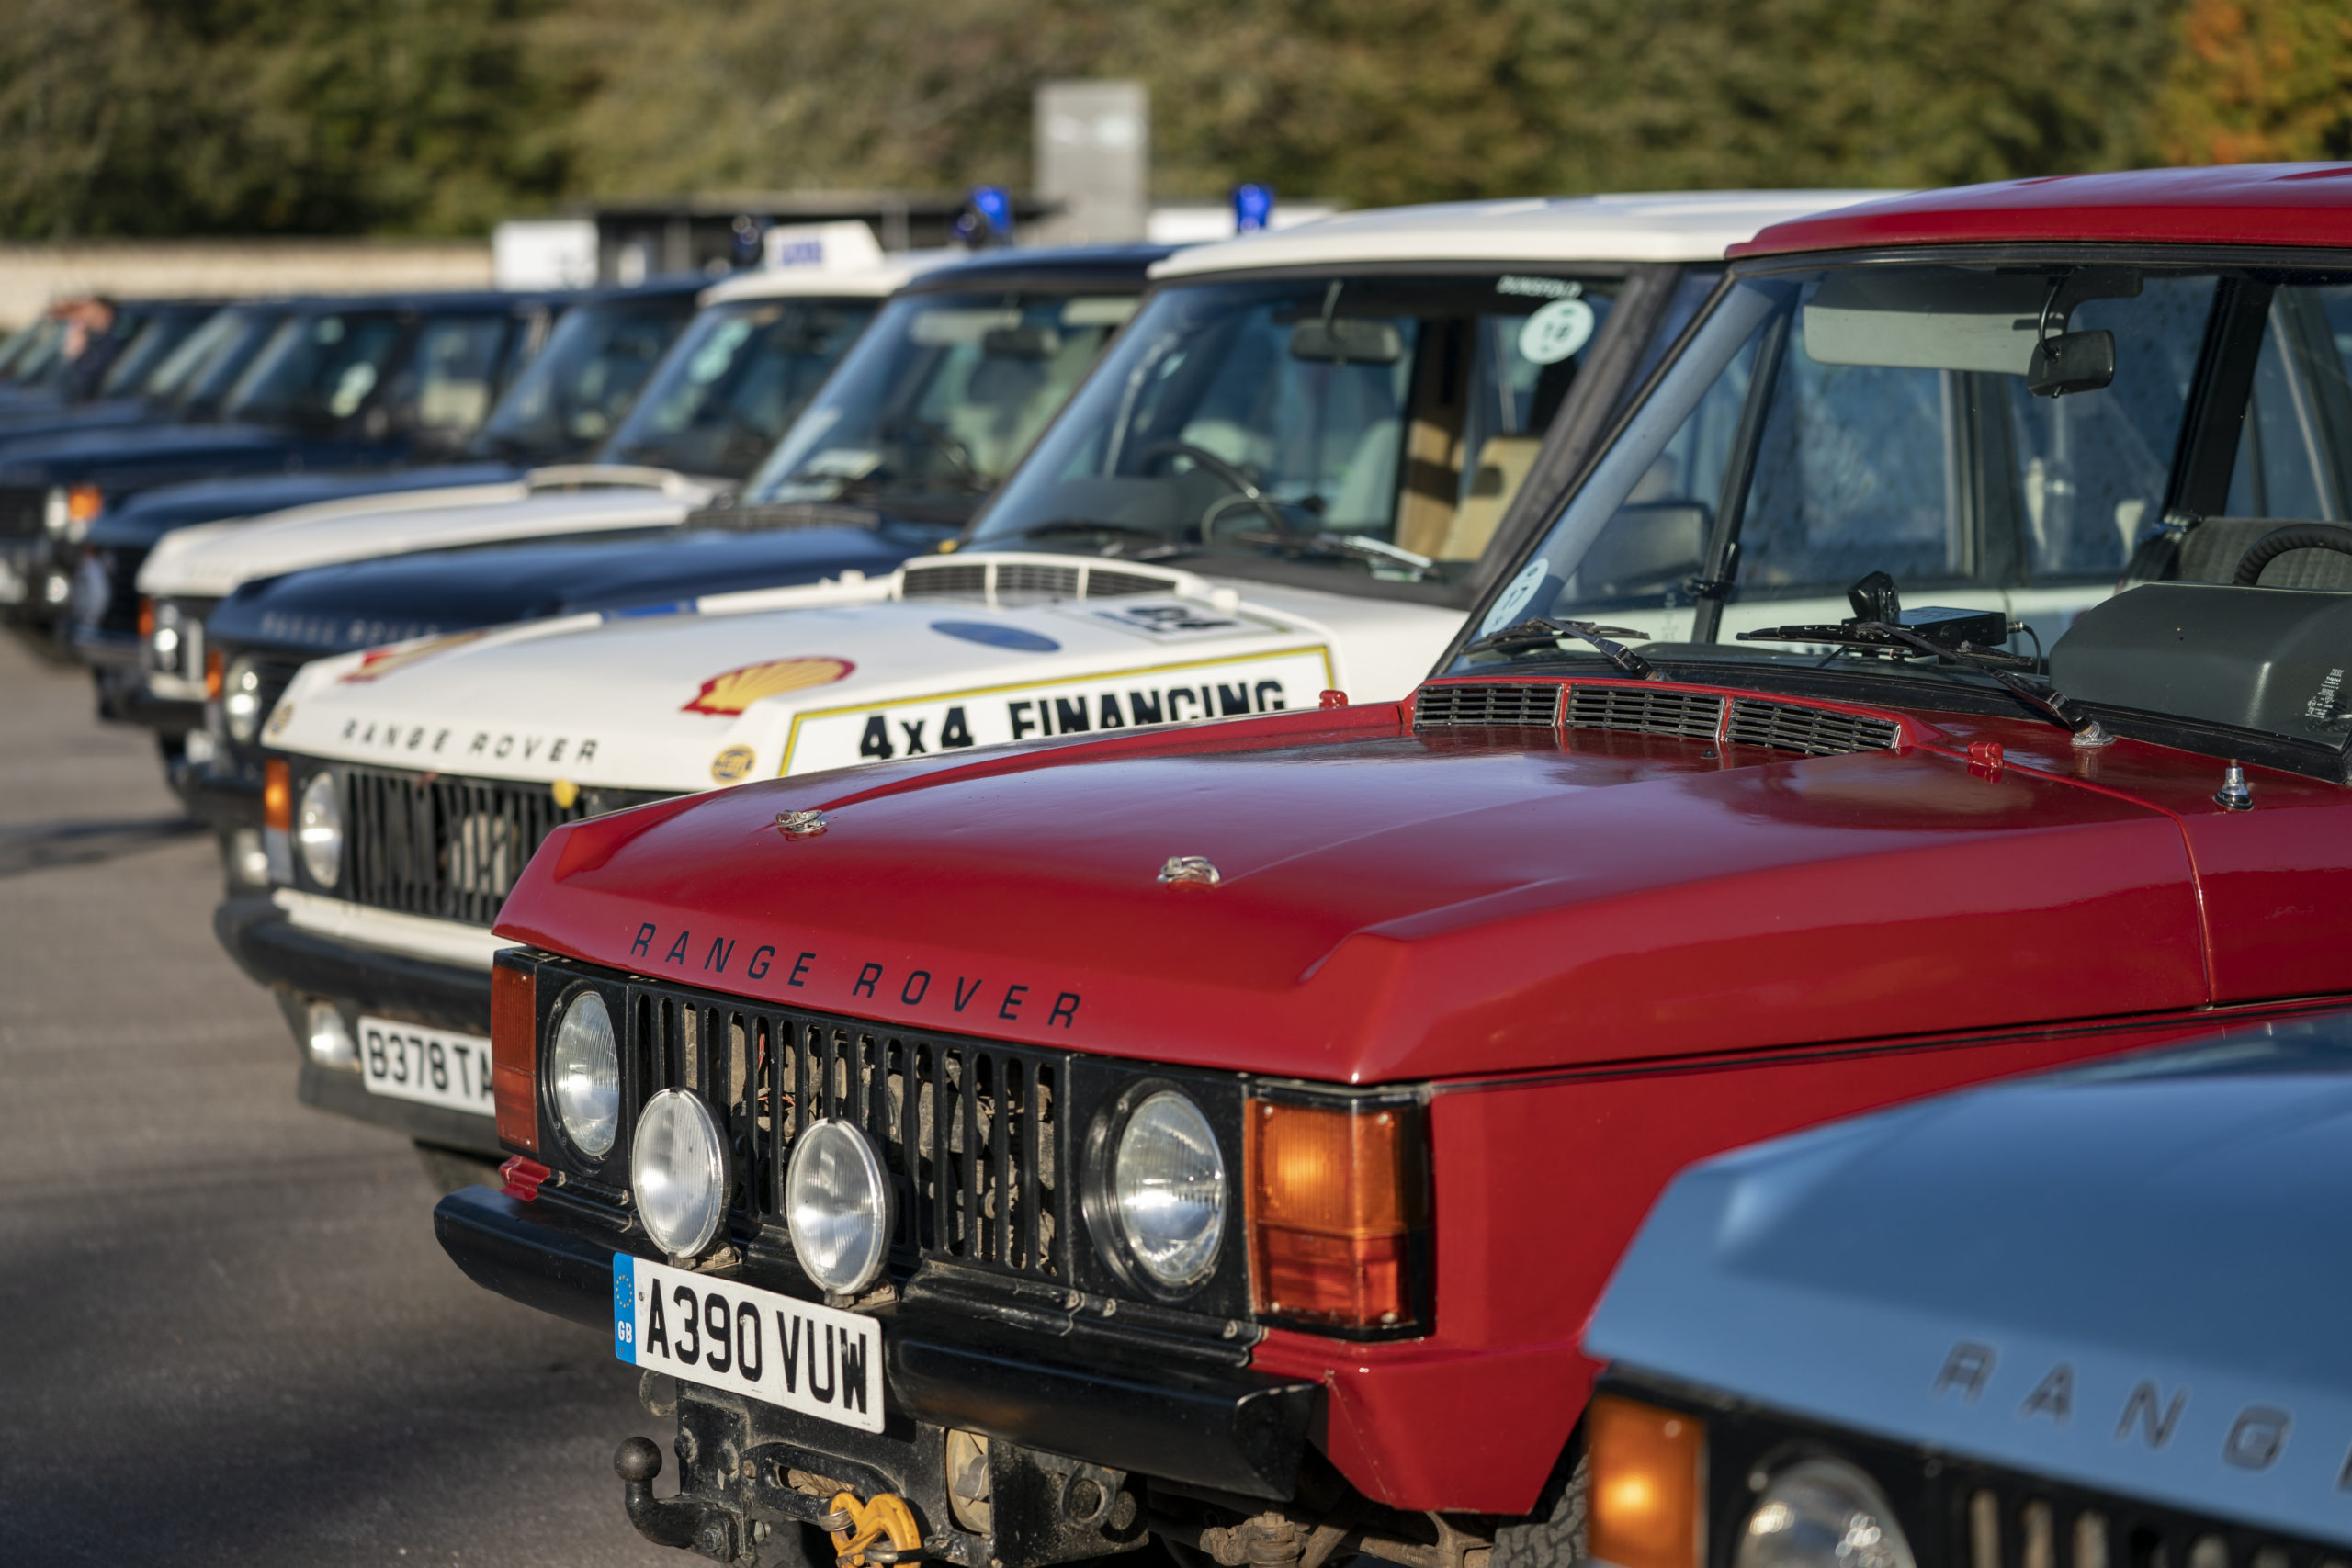 50 Years of Range Rover Celebration at 2020 Goodwood Festival of Speed